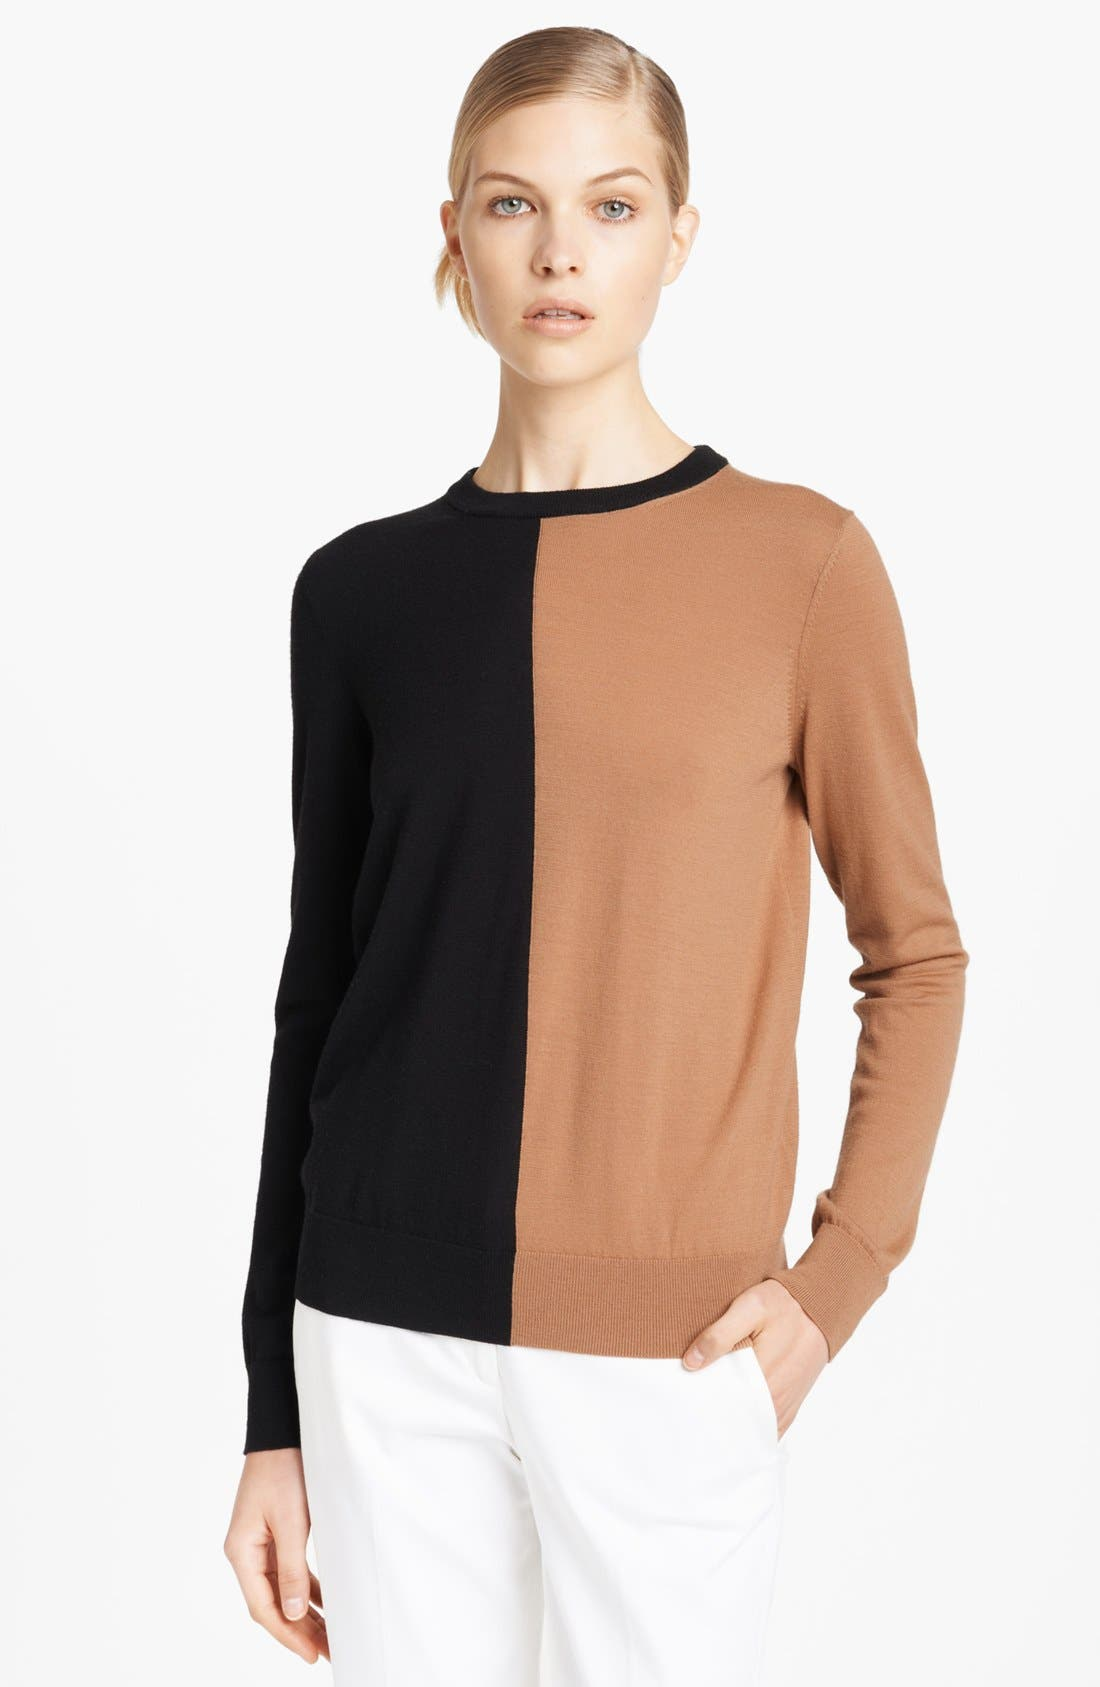 Alternate Image 1 Selected - Michael Kors Colorblock Merino Wool Sweater